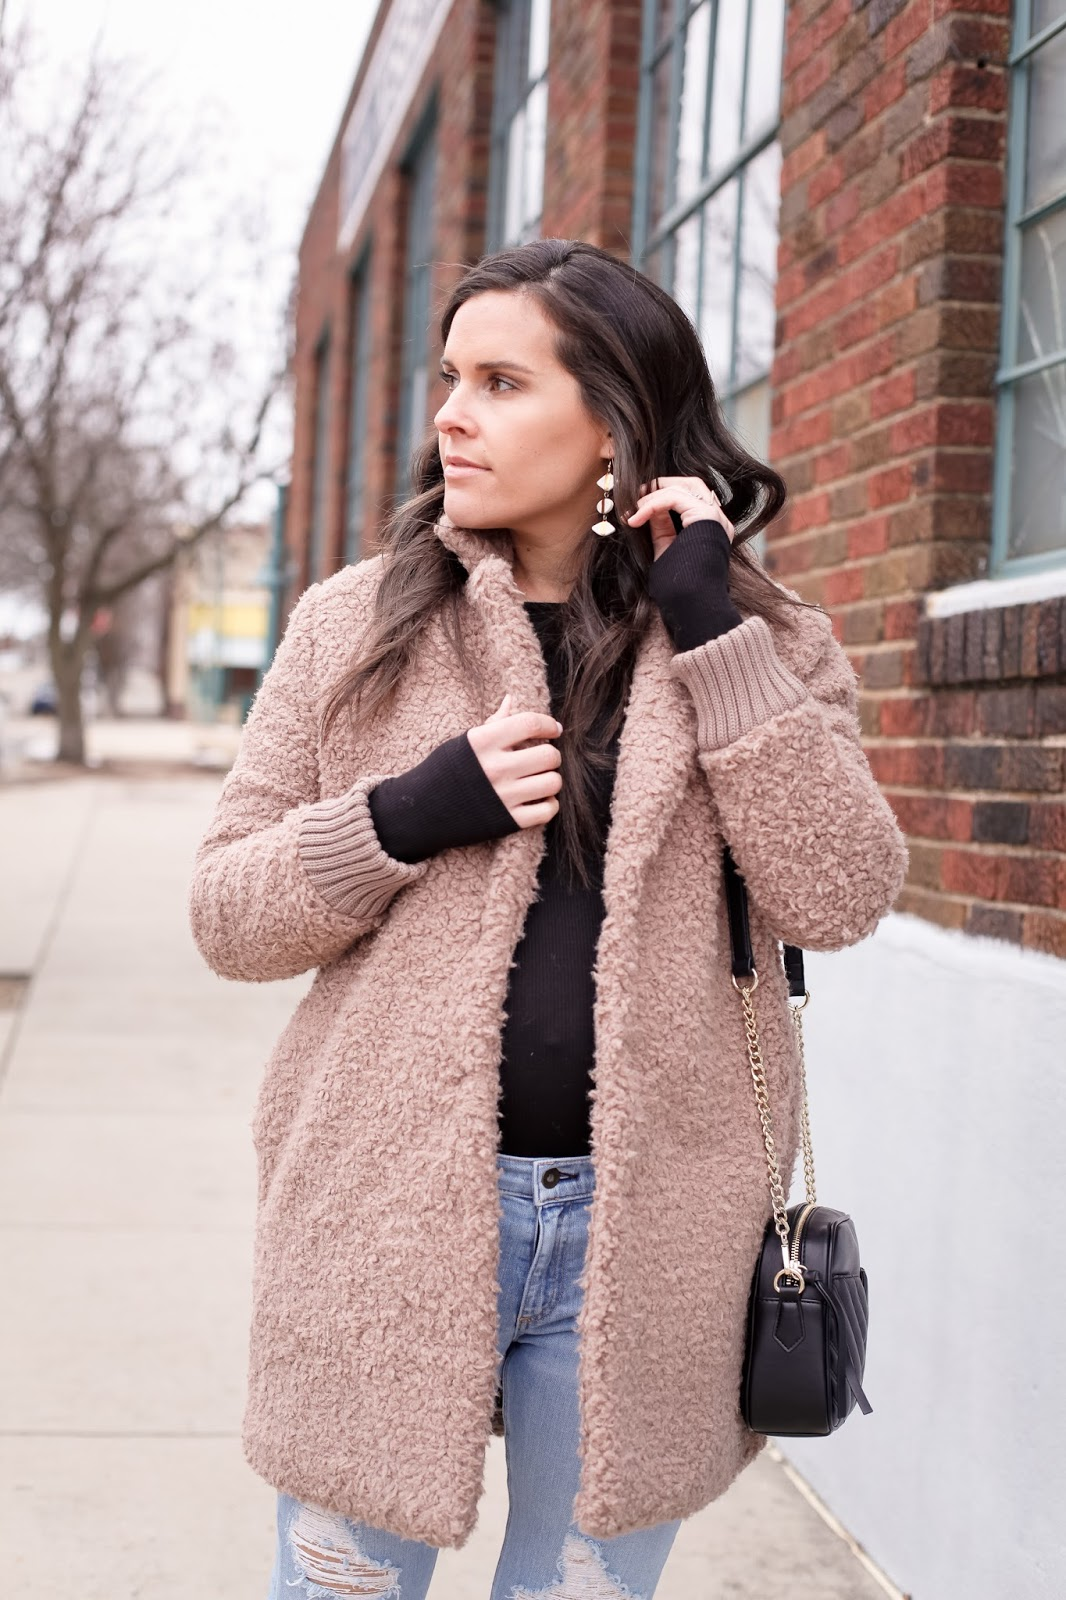 How to style a teddy coat for a warm winter day.